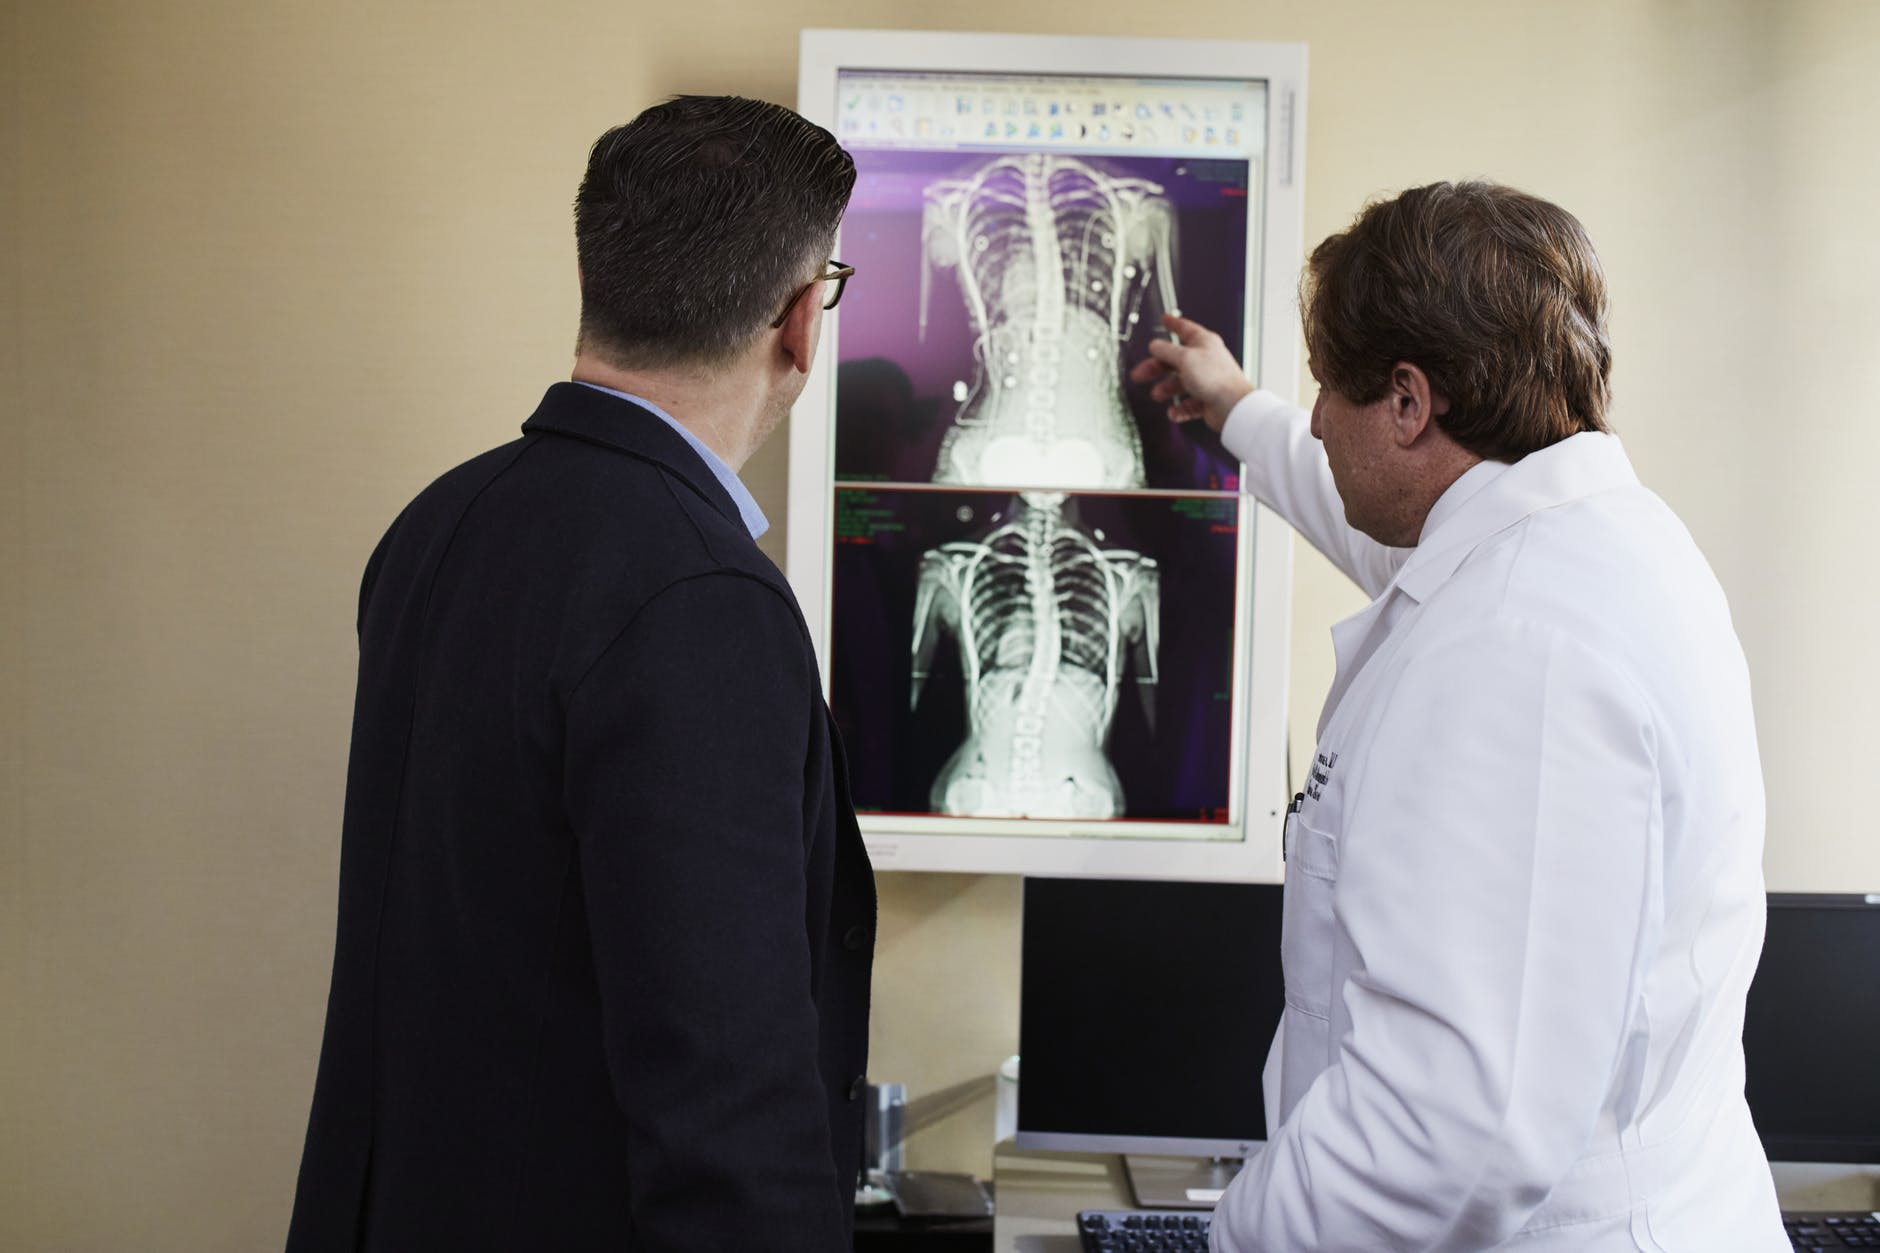 doctor pointing x ray result beside man wearing black suit